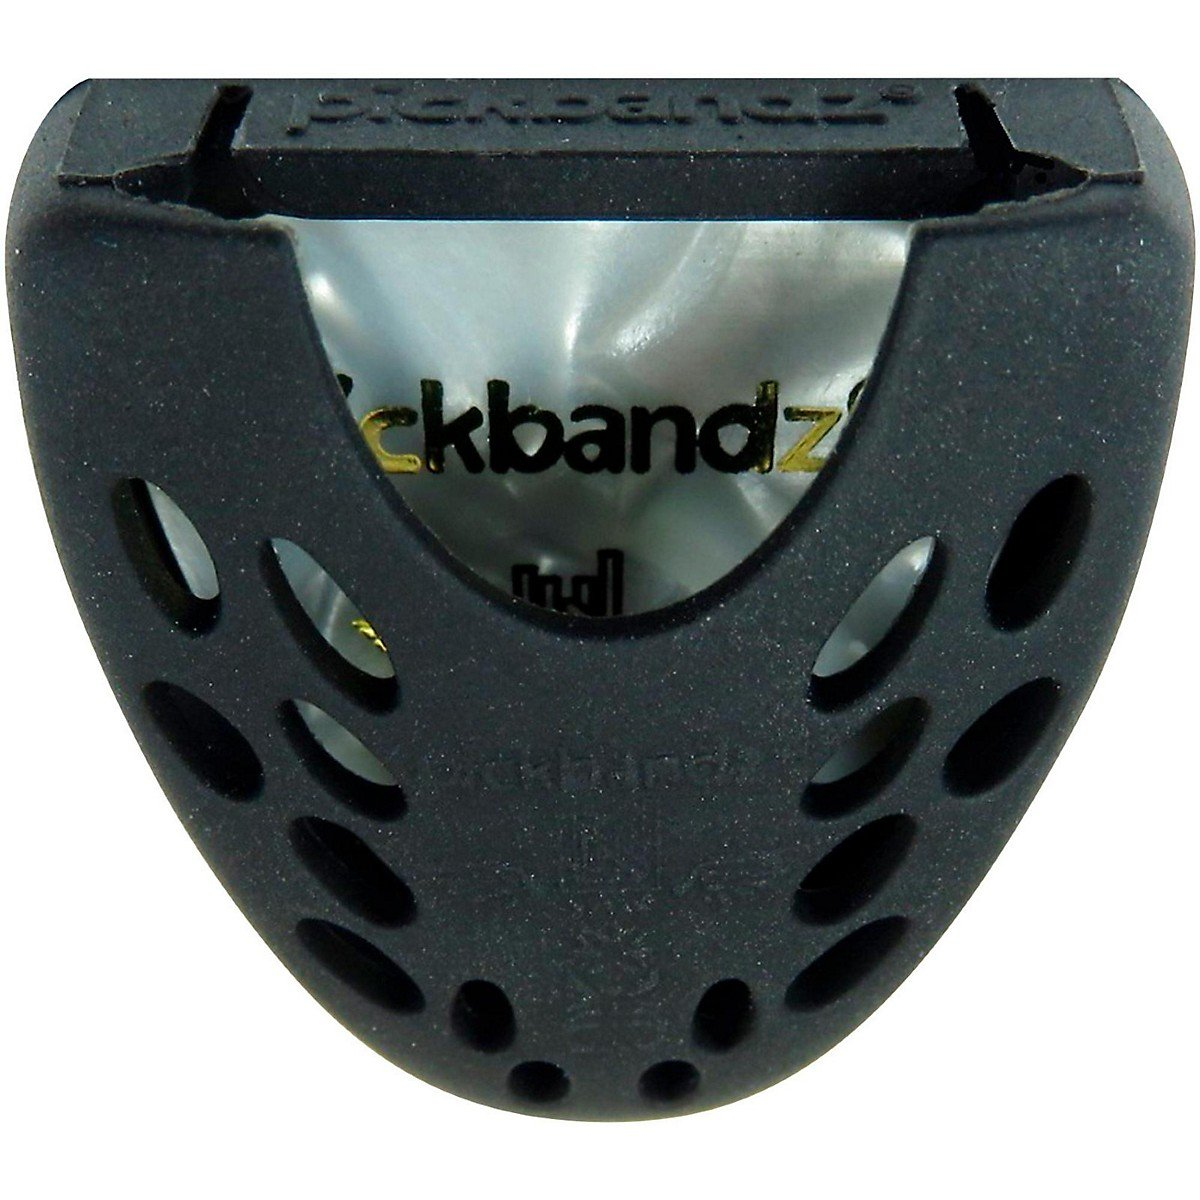 Guitar Pick Holder by Pickbandz® in Black Stick-it-Pick-itTM has a 3M non-marring adhesive on the back 854836003359